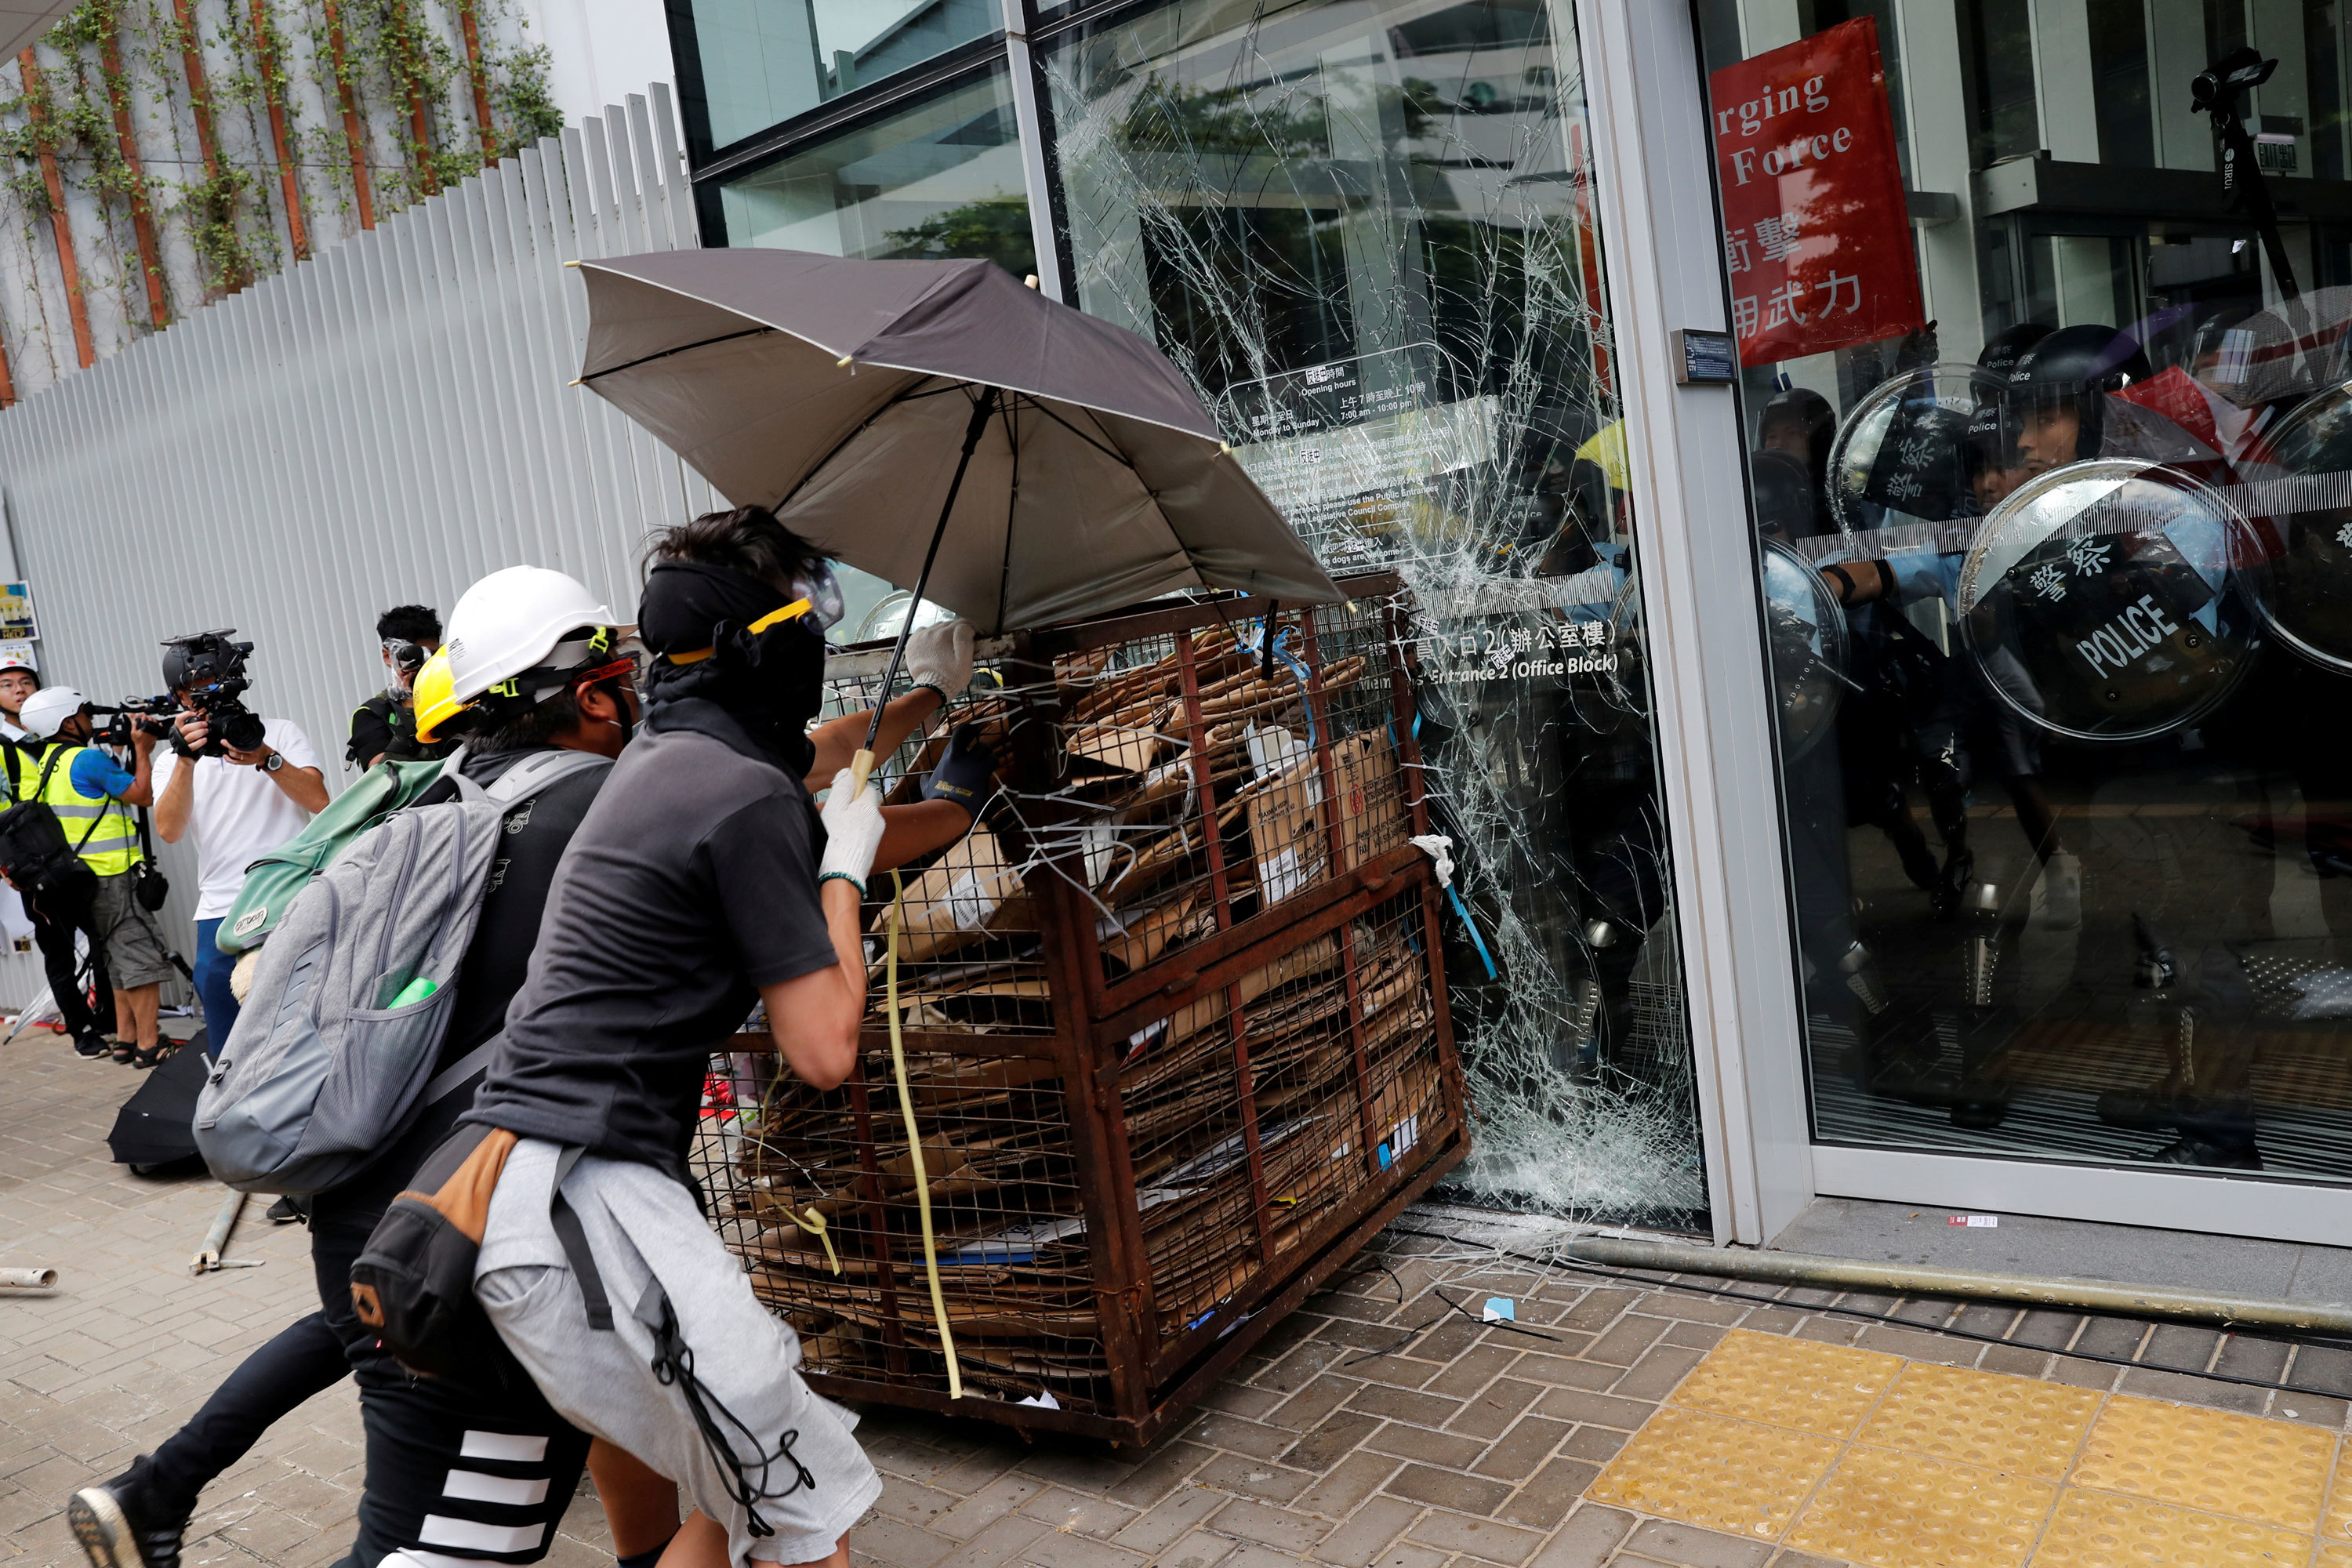 Protesters try to break into the Legislative Council building as riot police look on from inside. (Tyrone Siu/Reuters)